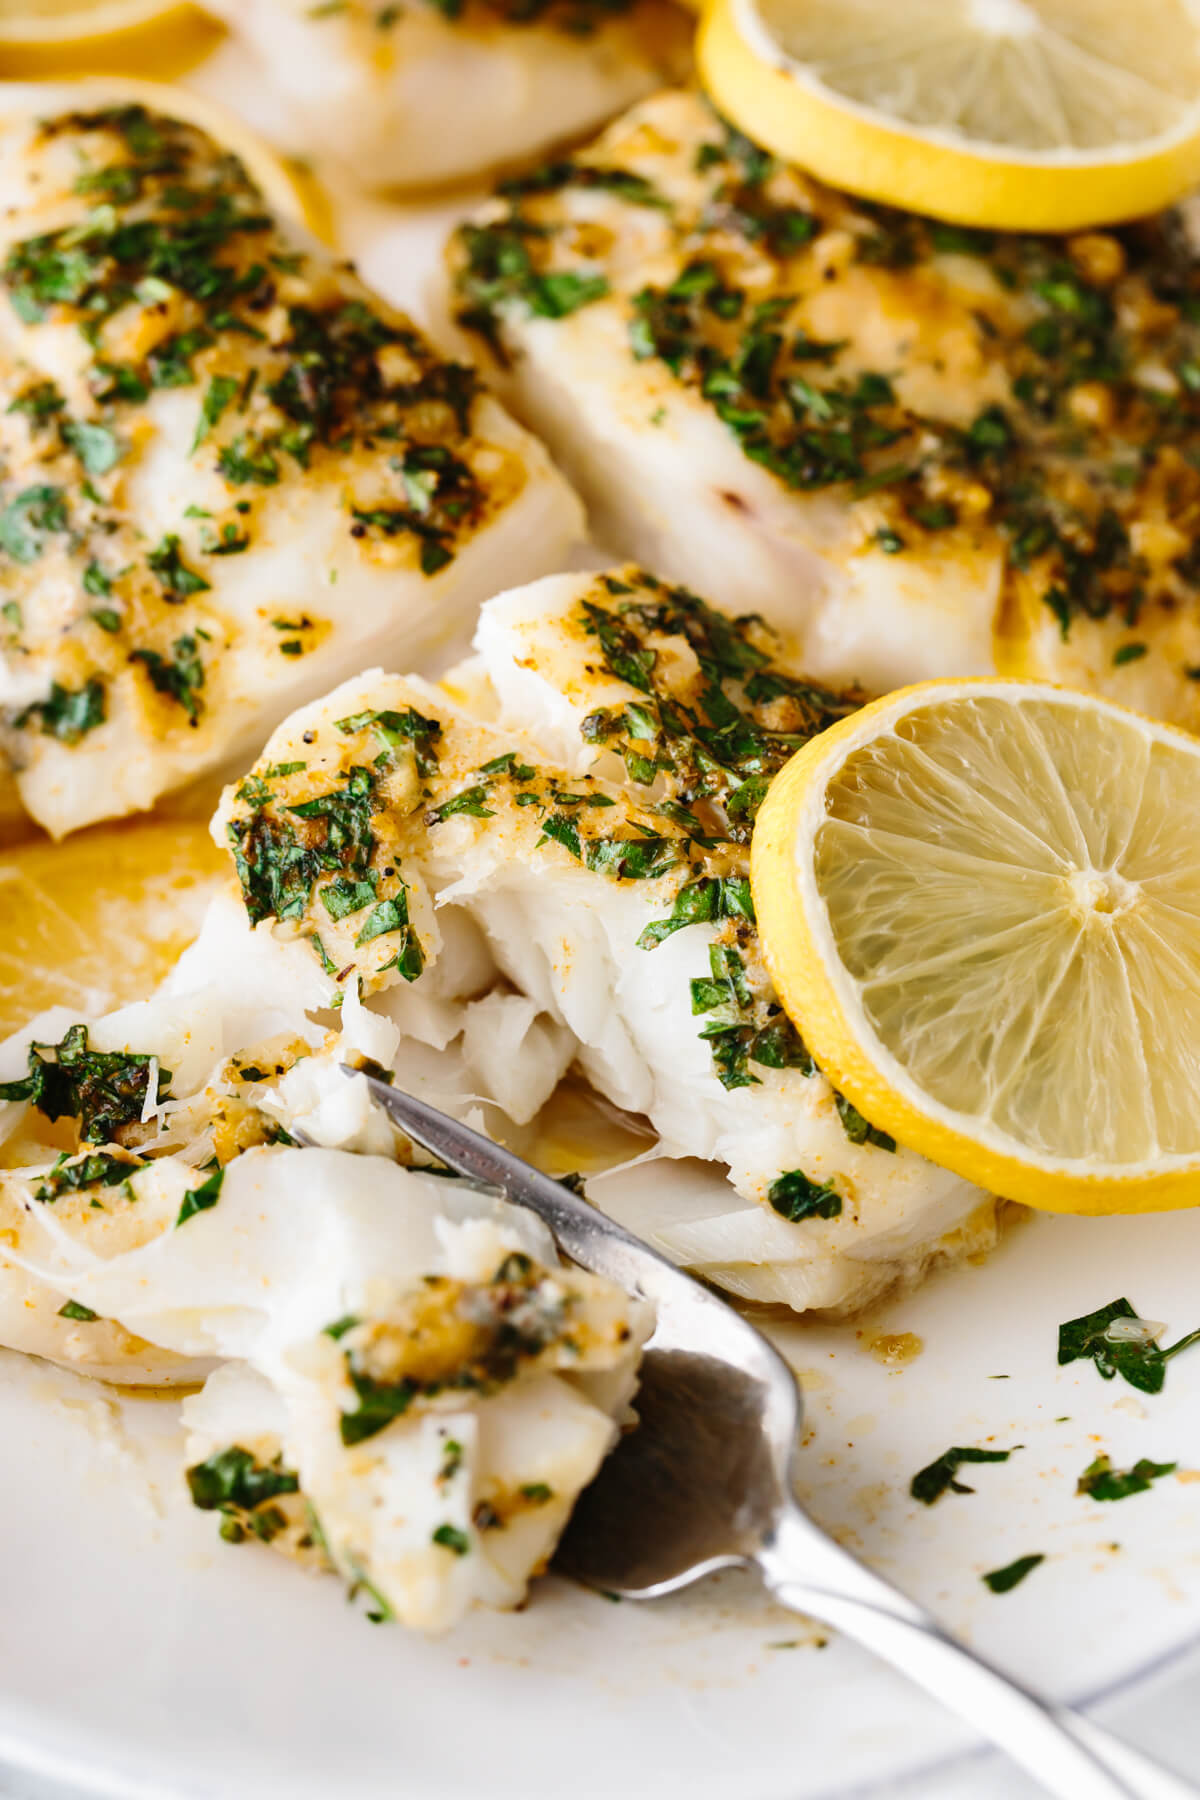 Baked cod filets on a white plate with a fork.